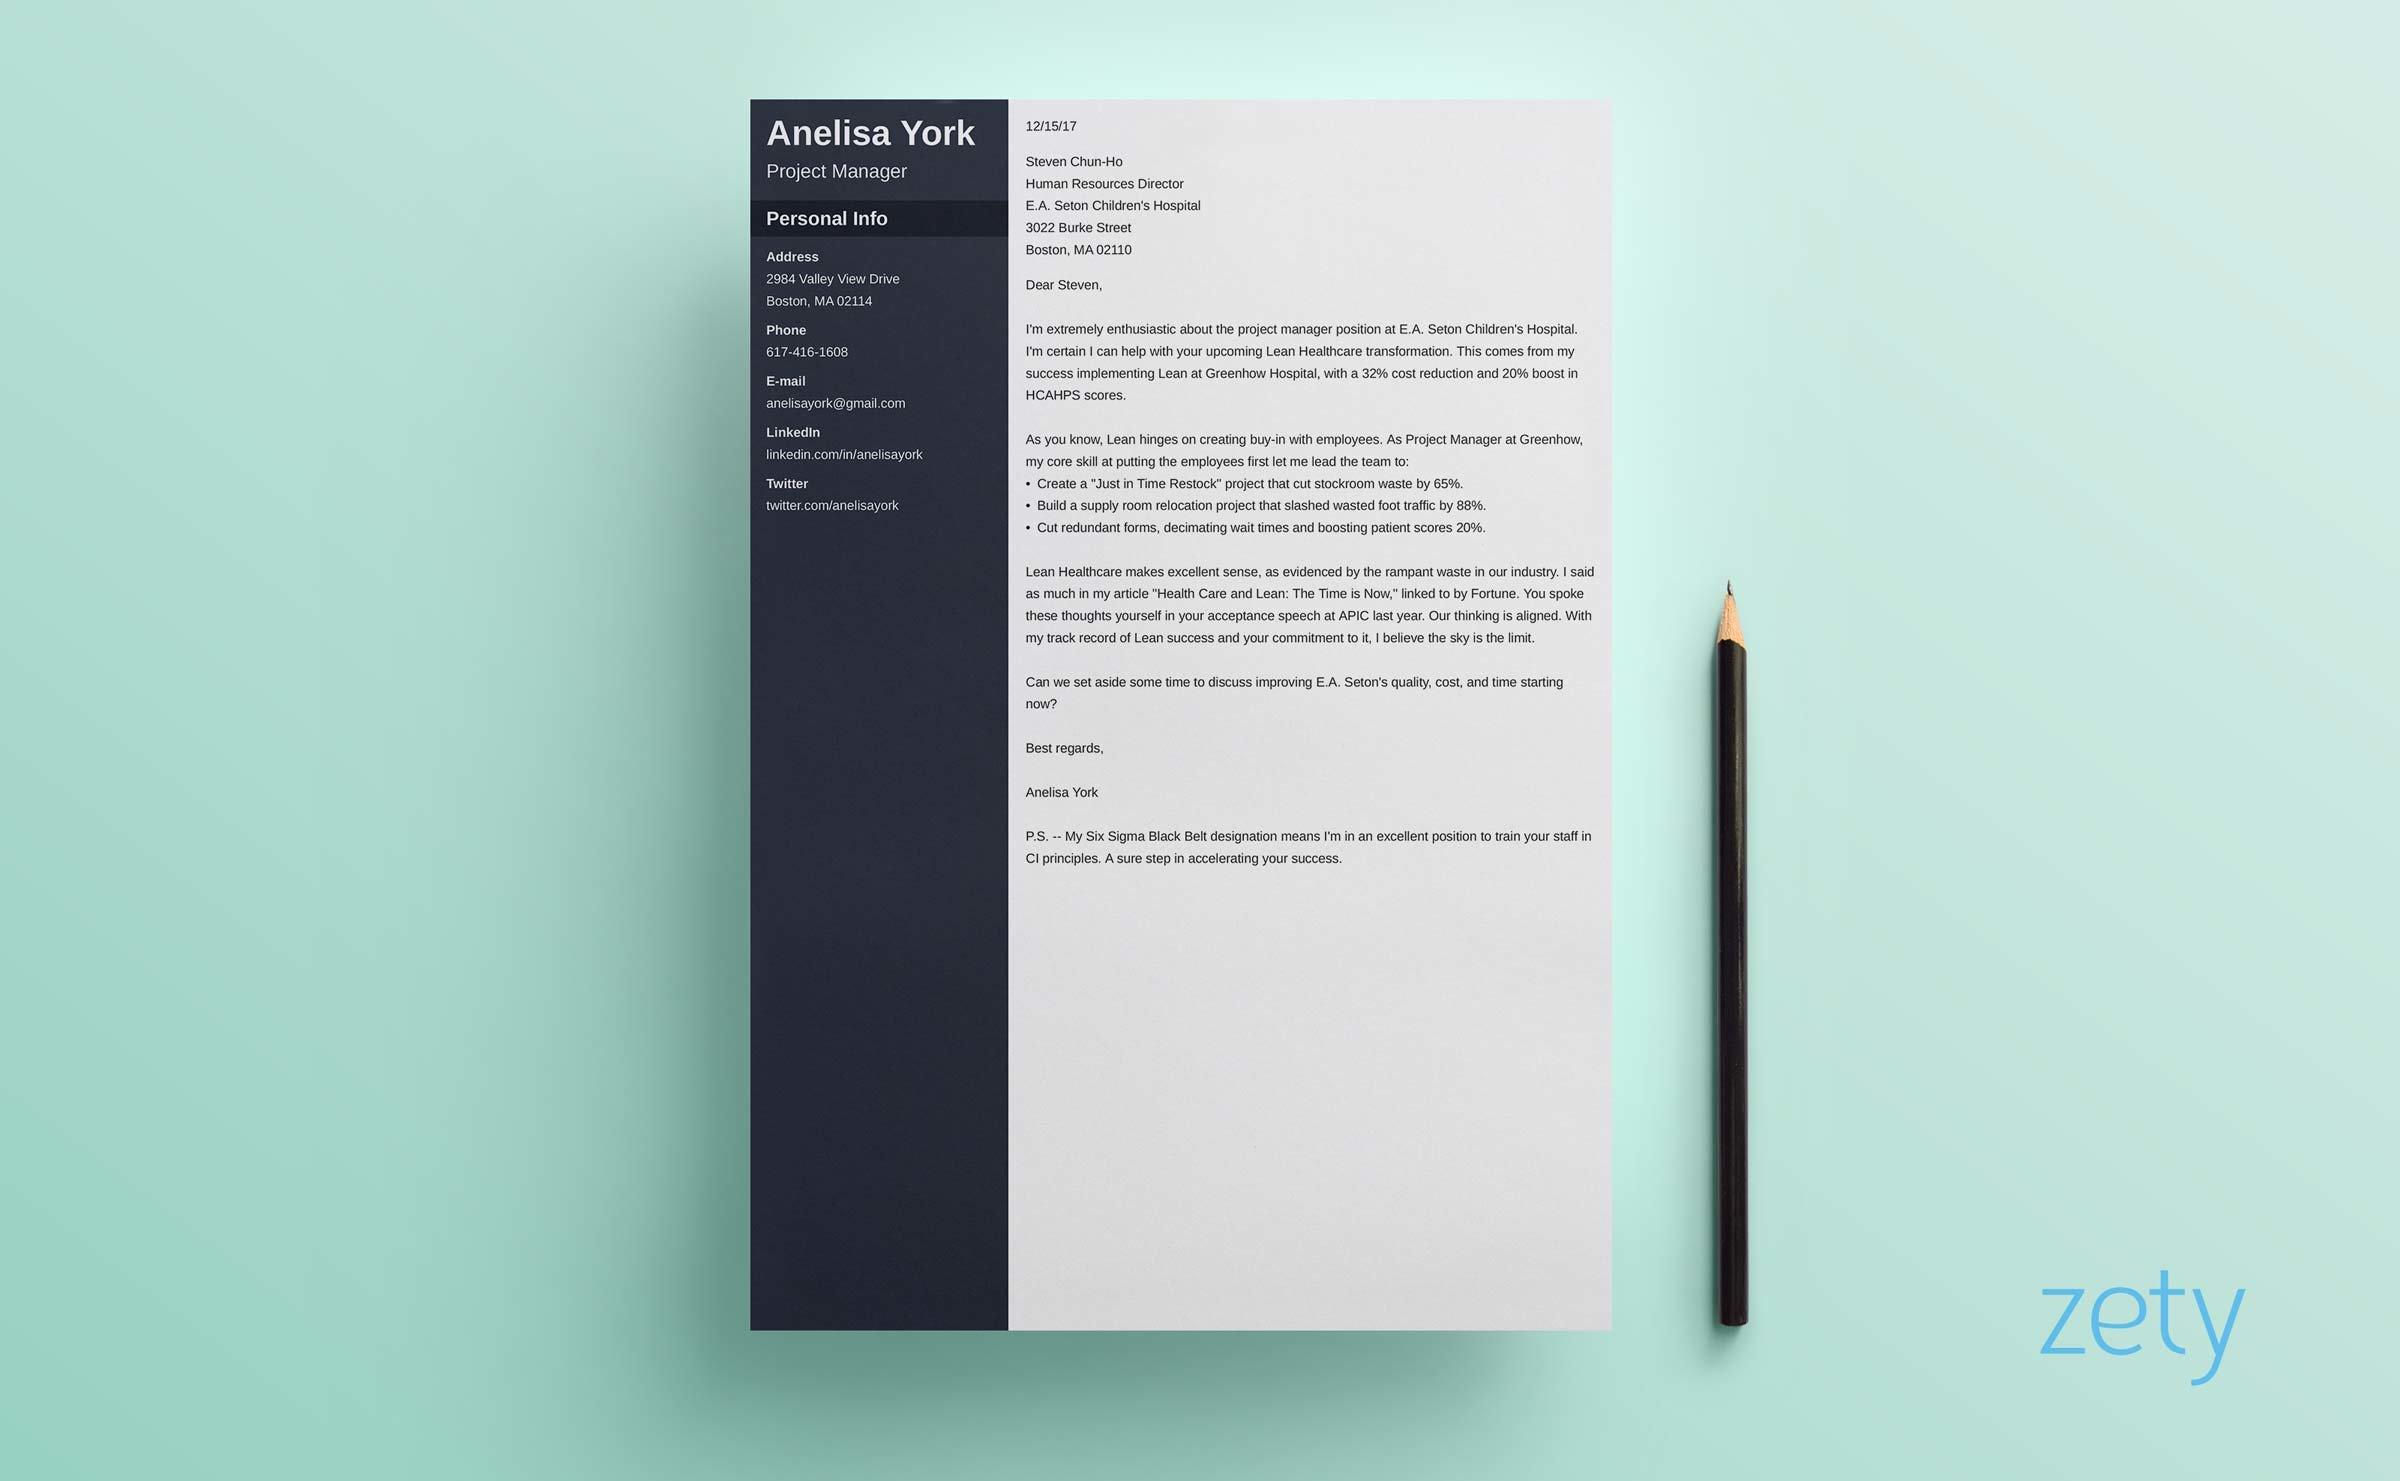 how long should a cover letter be ideal word length